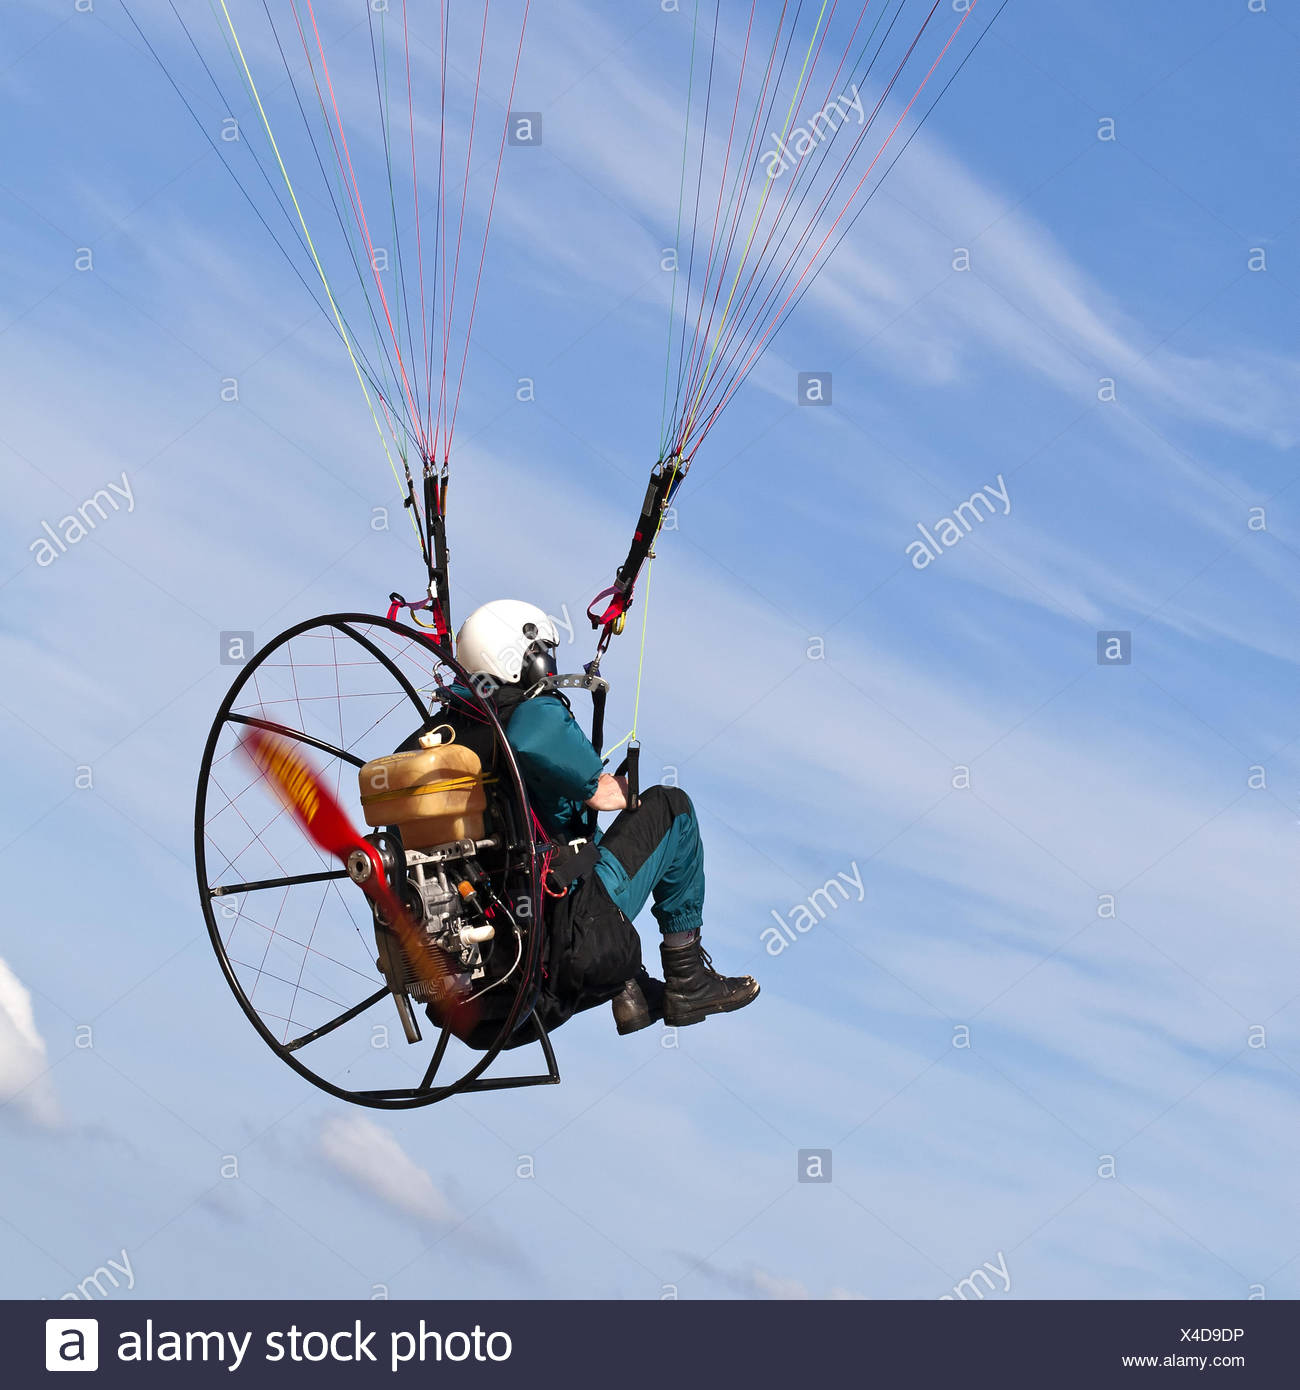 fly away - Stock Image